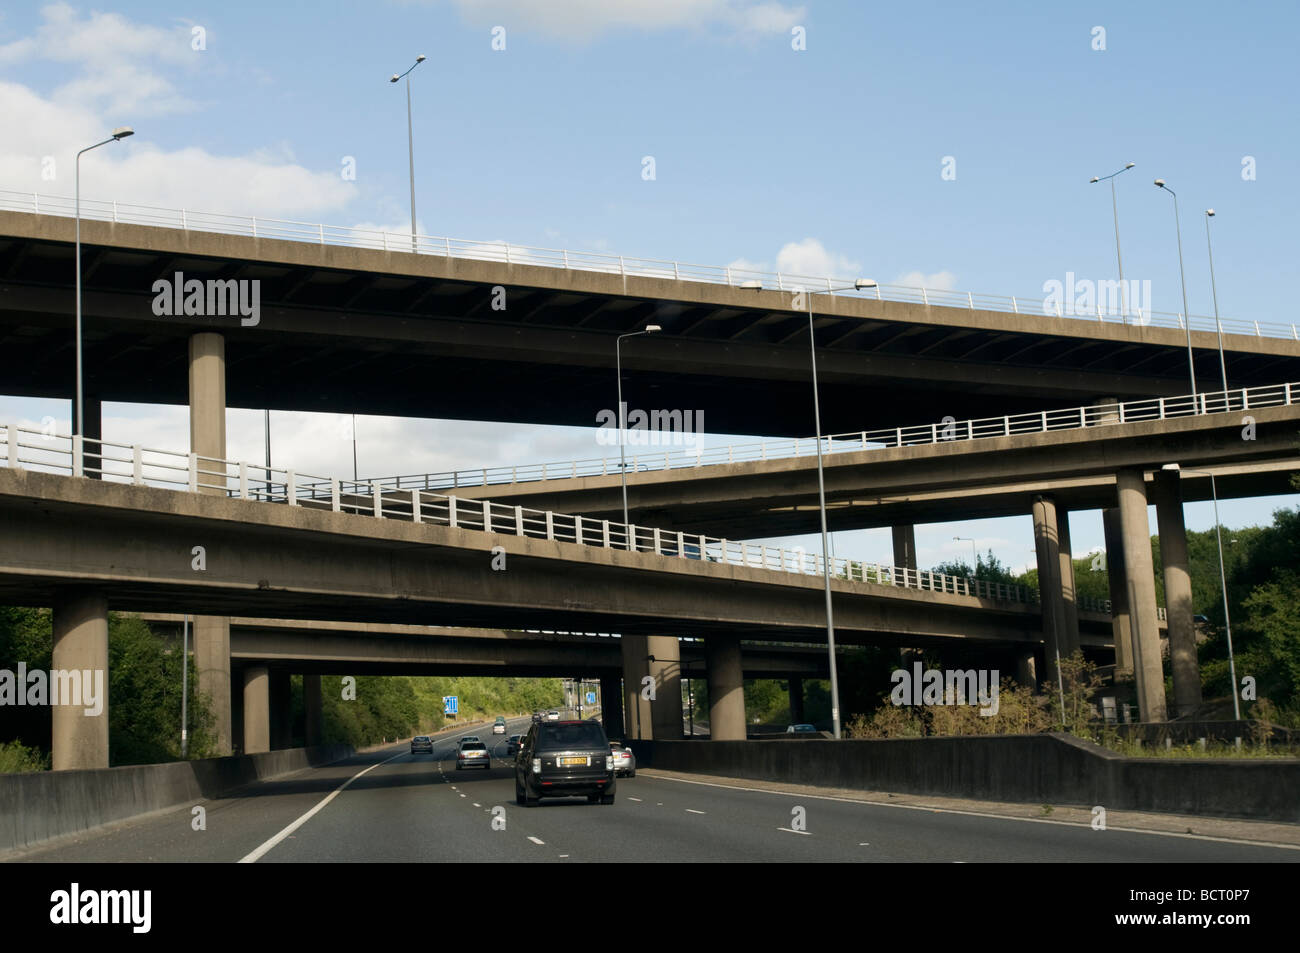 UNITED KINGDOM, ENGLAND, 12th July 2009. The junction of the M25 and M23 motorways in the south of England. - Stock Image